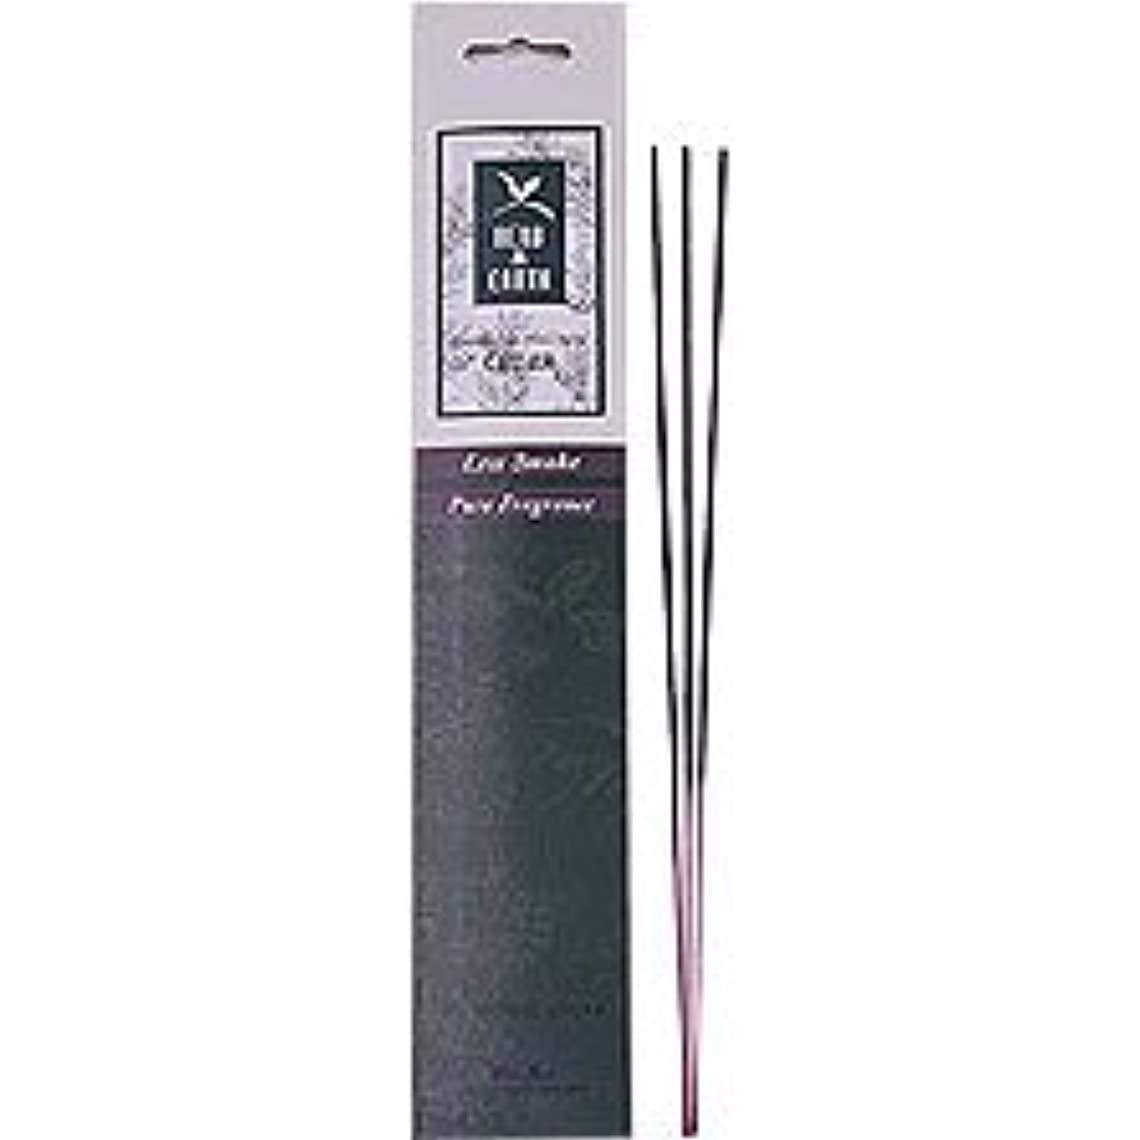 Herb & Earth Incense – Cedar